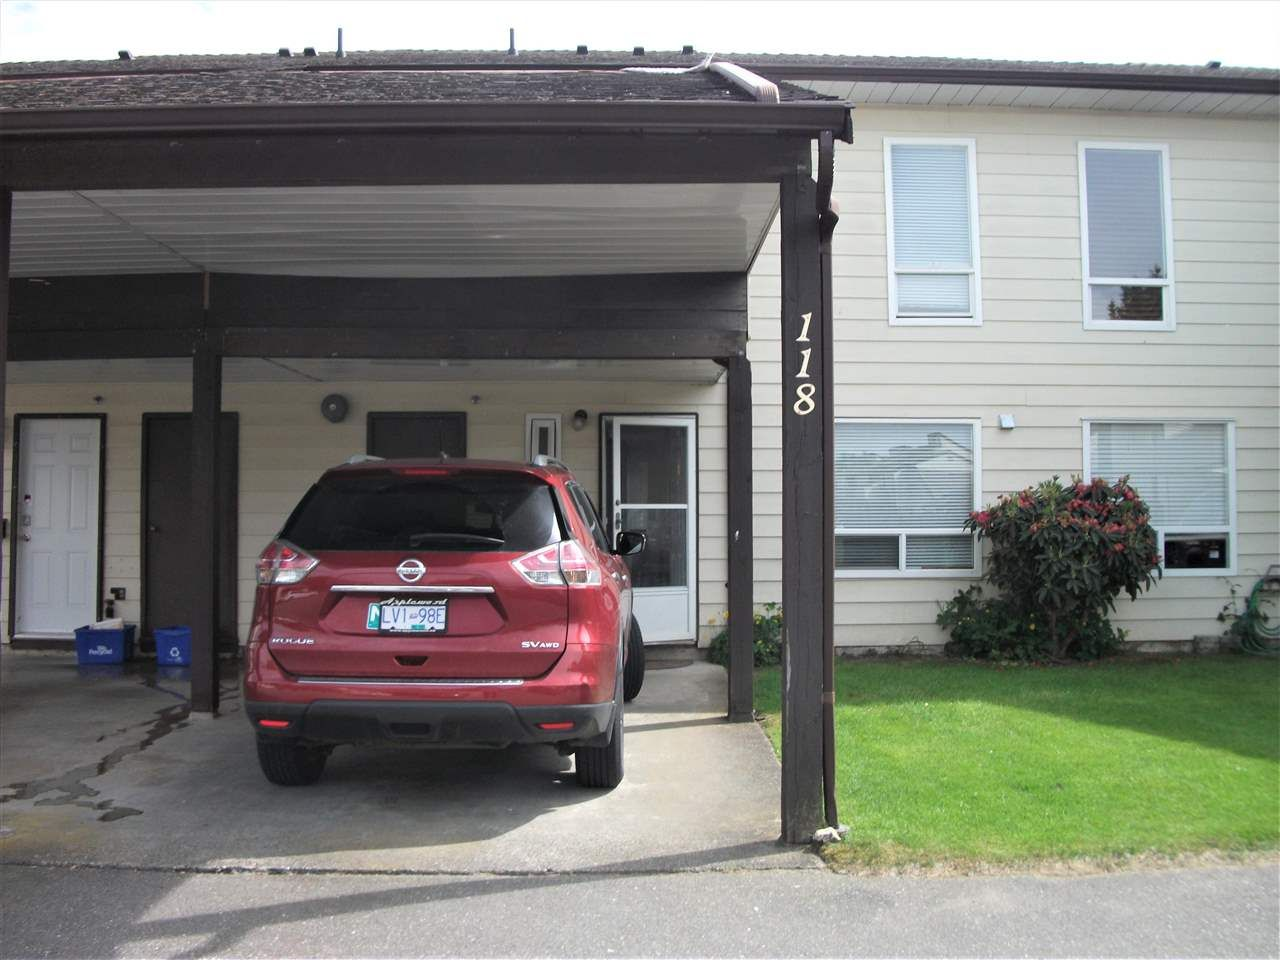 """Main Photo: 118 2844 273 Street in Langley: Aldergrove Langley Townhouse for sale in """"Chelsea Court"""" : MLS®# R2587038"""